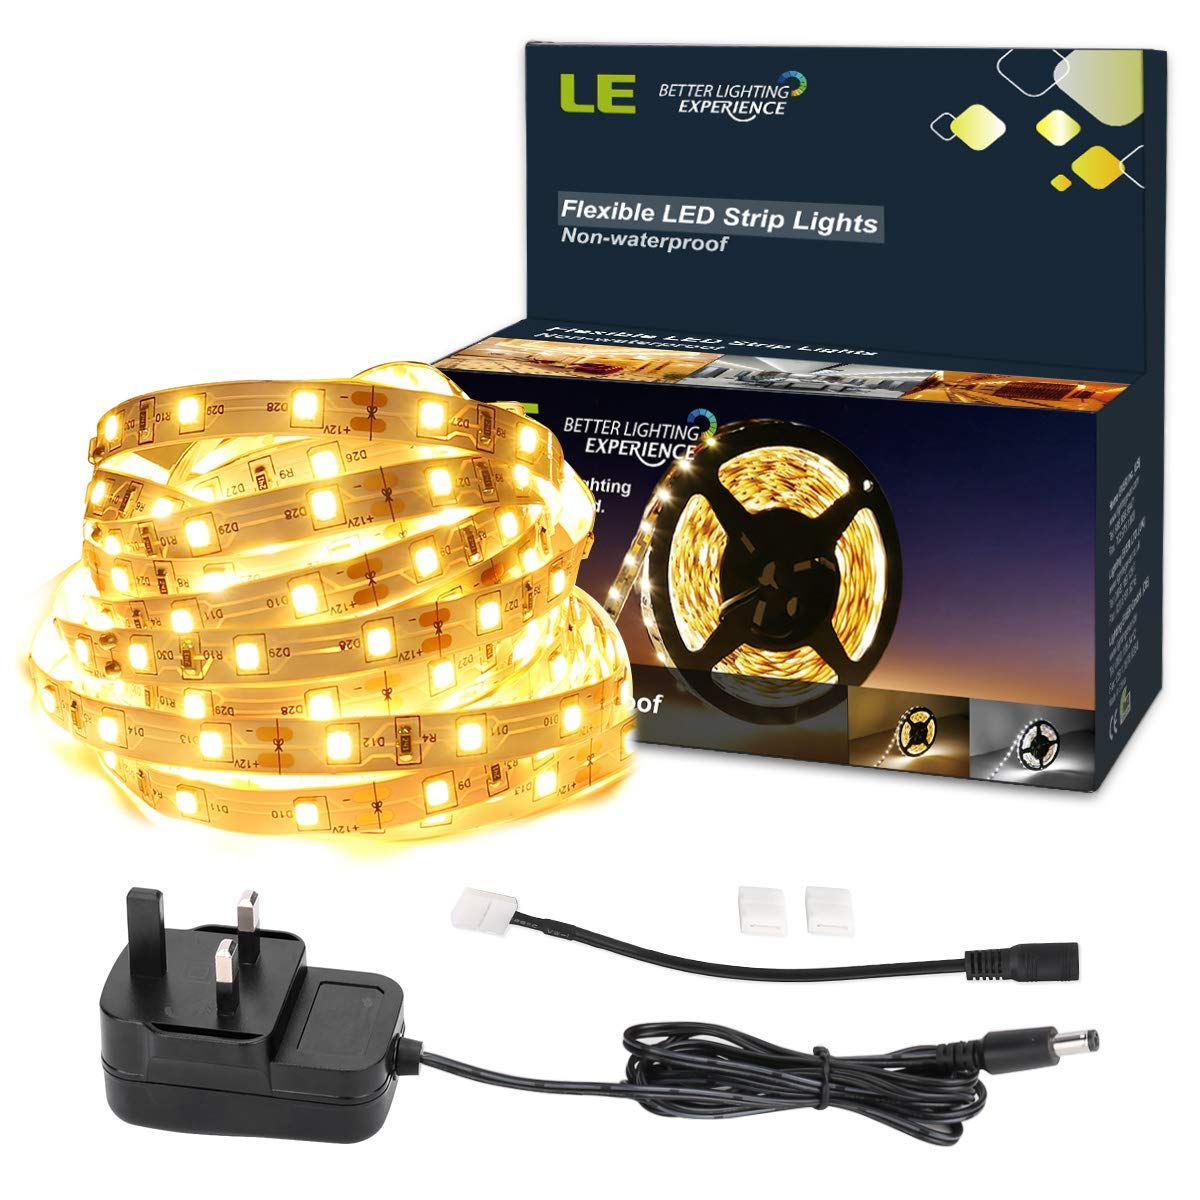 Le 5m Led Strip Lights Kit 300 Smd 2835 Leds Ribbon With Power Flexible Light Elements For On Wiring Strips To Battery Supply Non Waterproof Striplight Warm White Rope Lighting Self Adhesive Tape